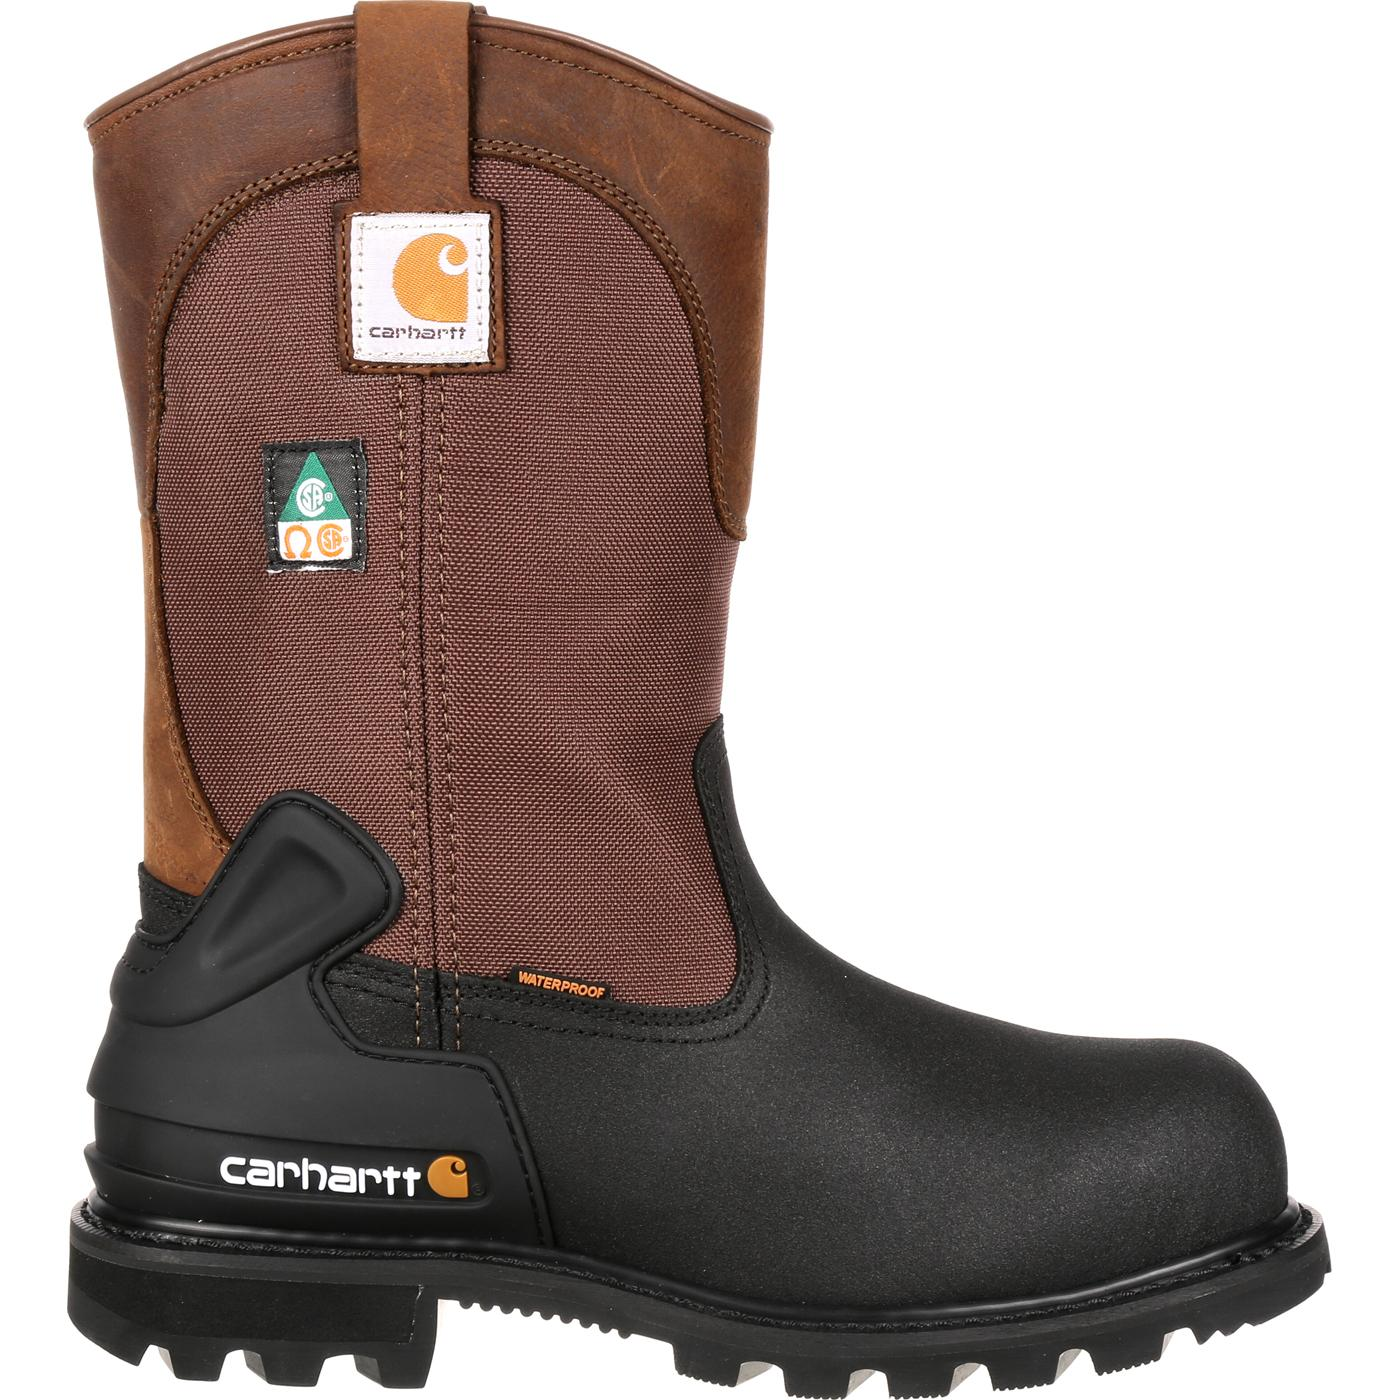 carhartt steel toe csa approved puncture resistant